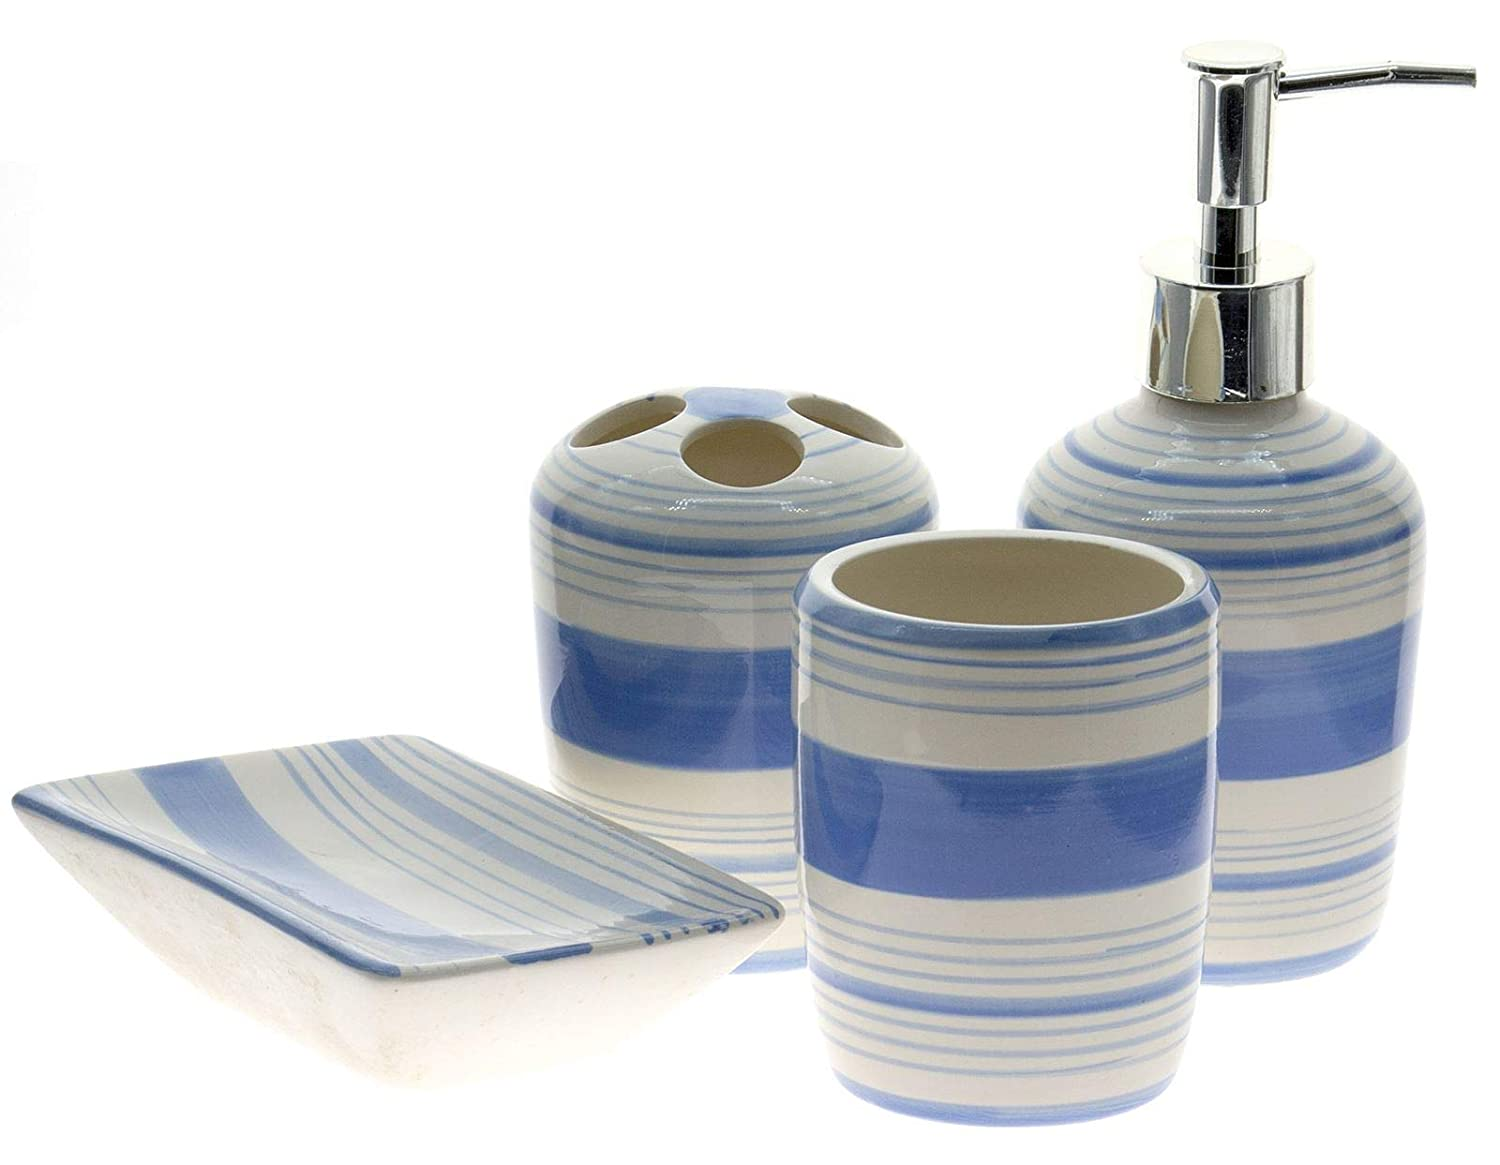 Ceramic Bathroom Accessories Set, 4 Pieces Consisting of Liquid Soap Dispenser, Saucer Soap Dish, Toothbrush Holder and Sink Cup, Black 90057